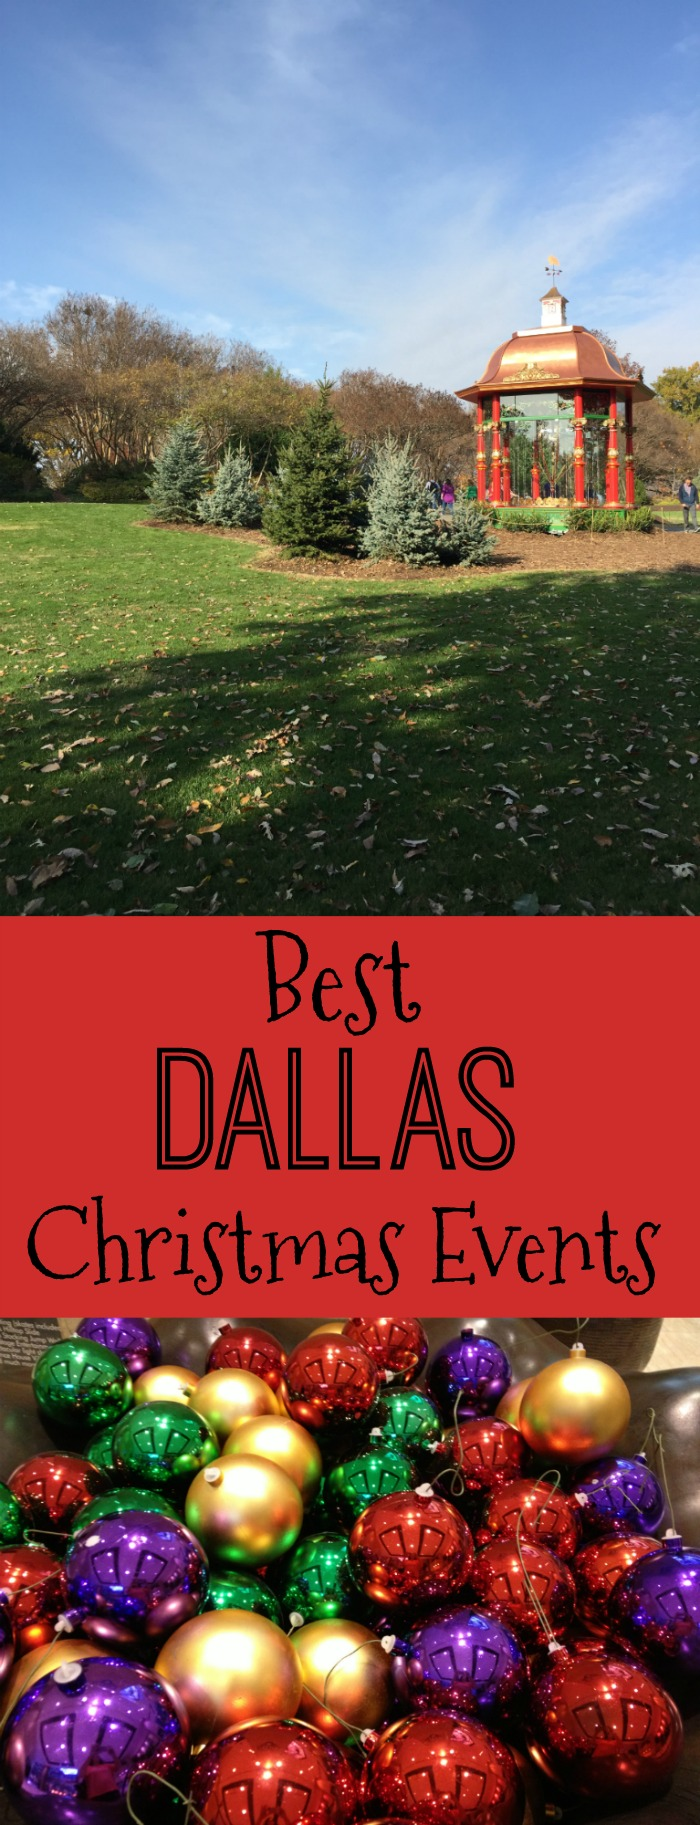 Best Dallas Christmas Events